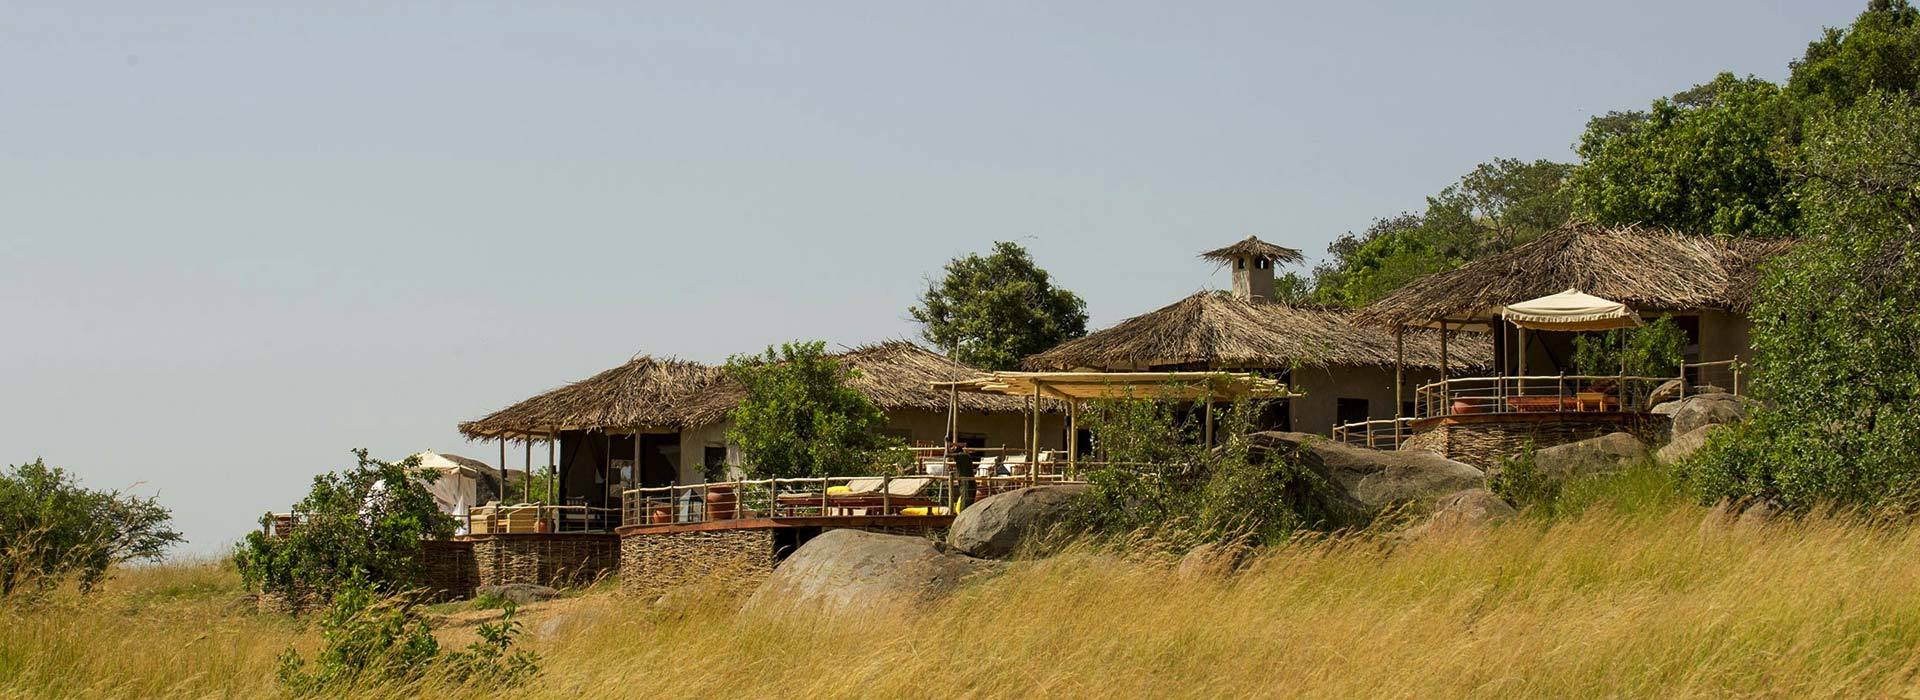 Tanzania Private Safari